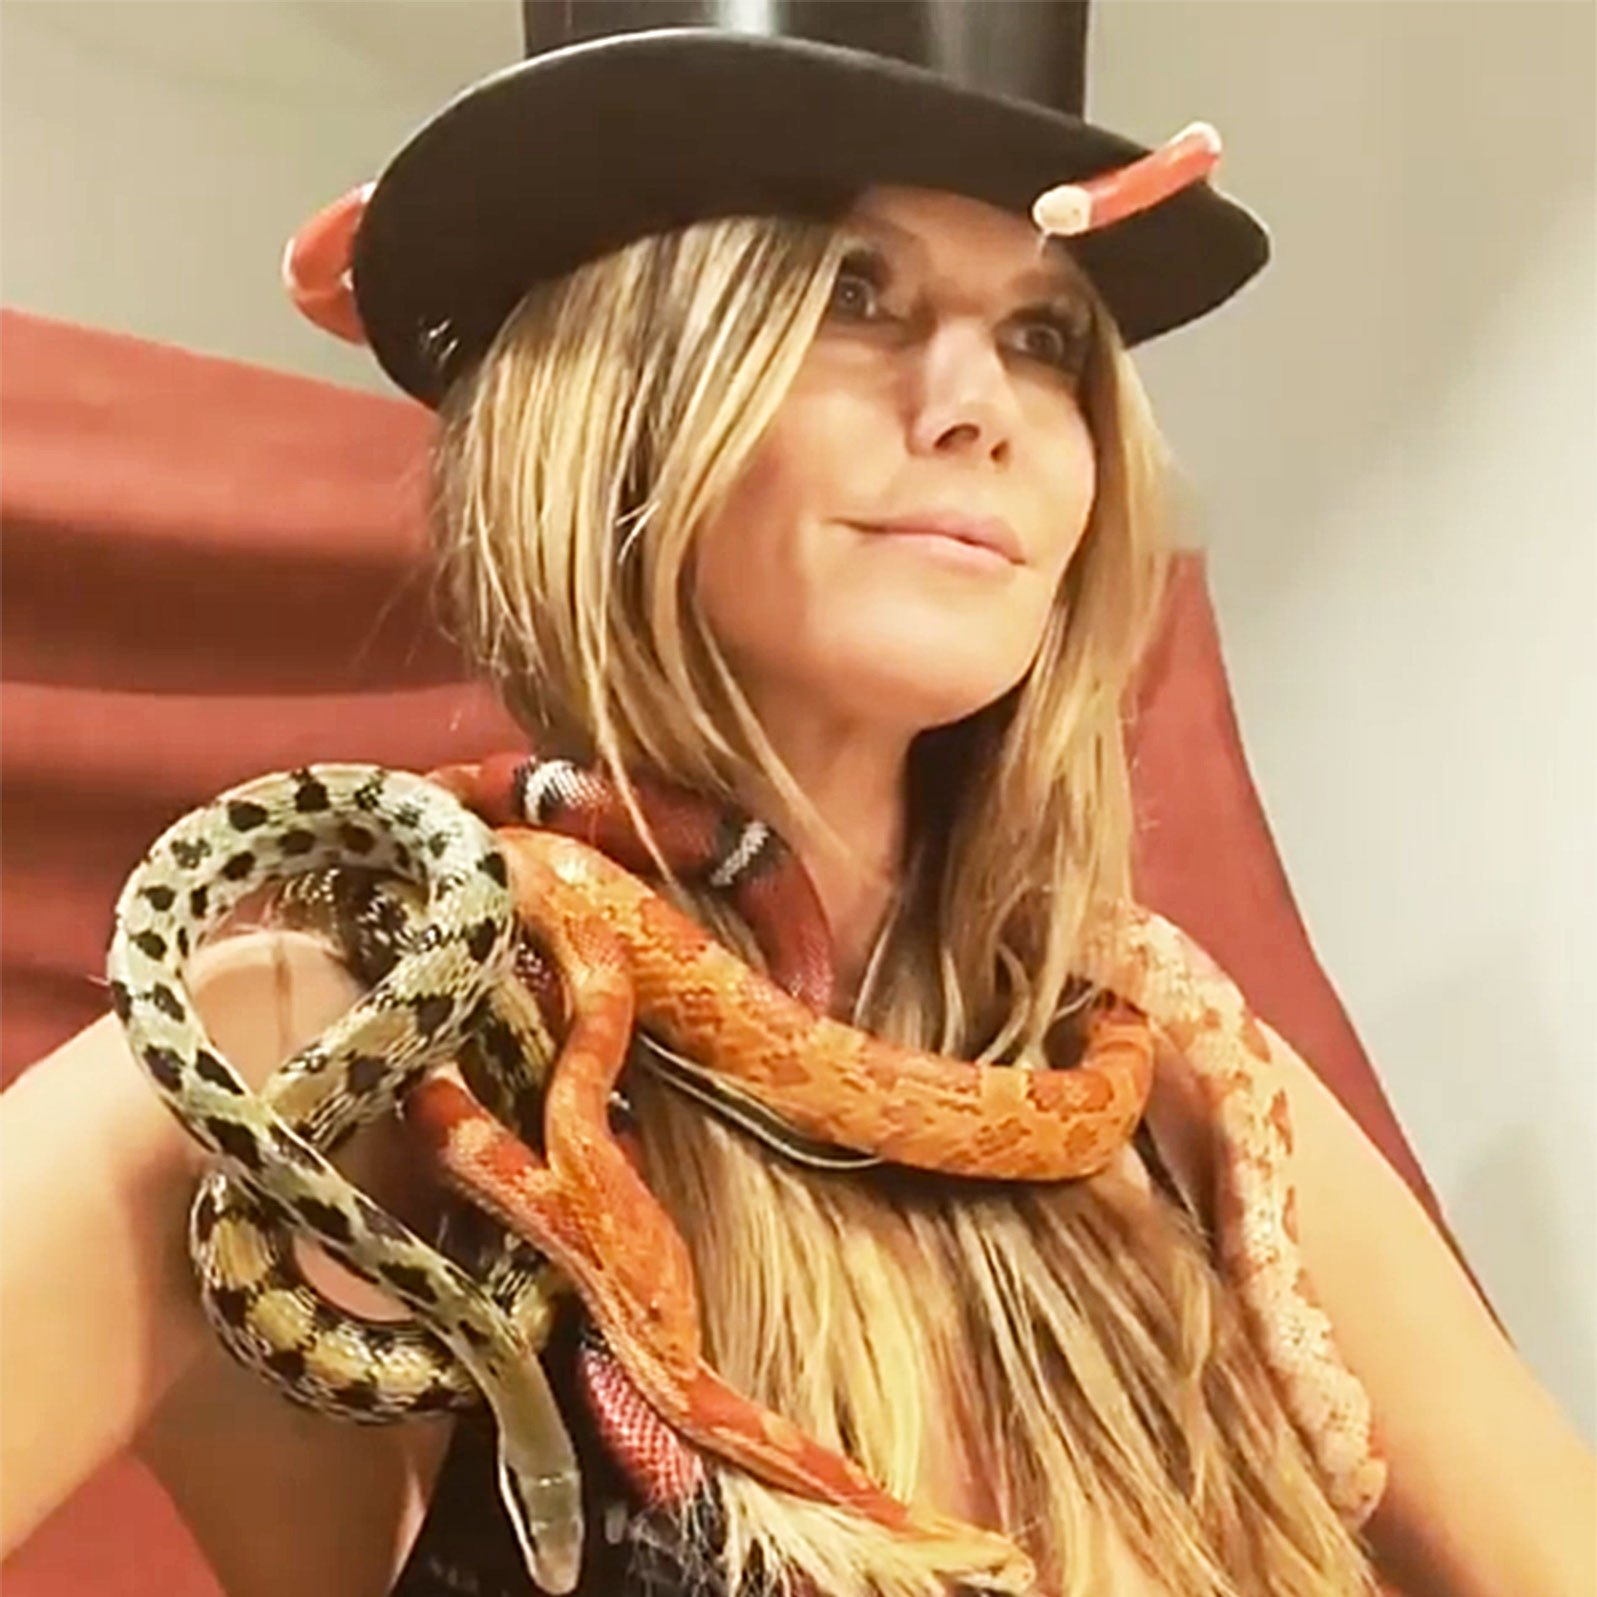 Heidi Klum Poses In Bra While Covered in Snakes